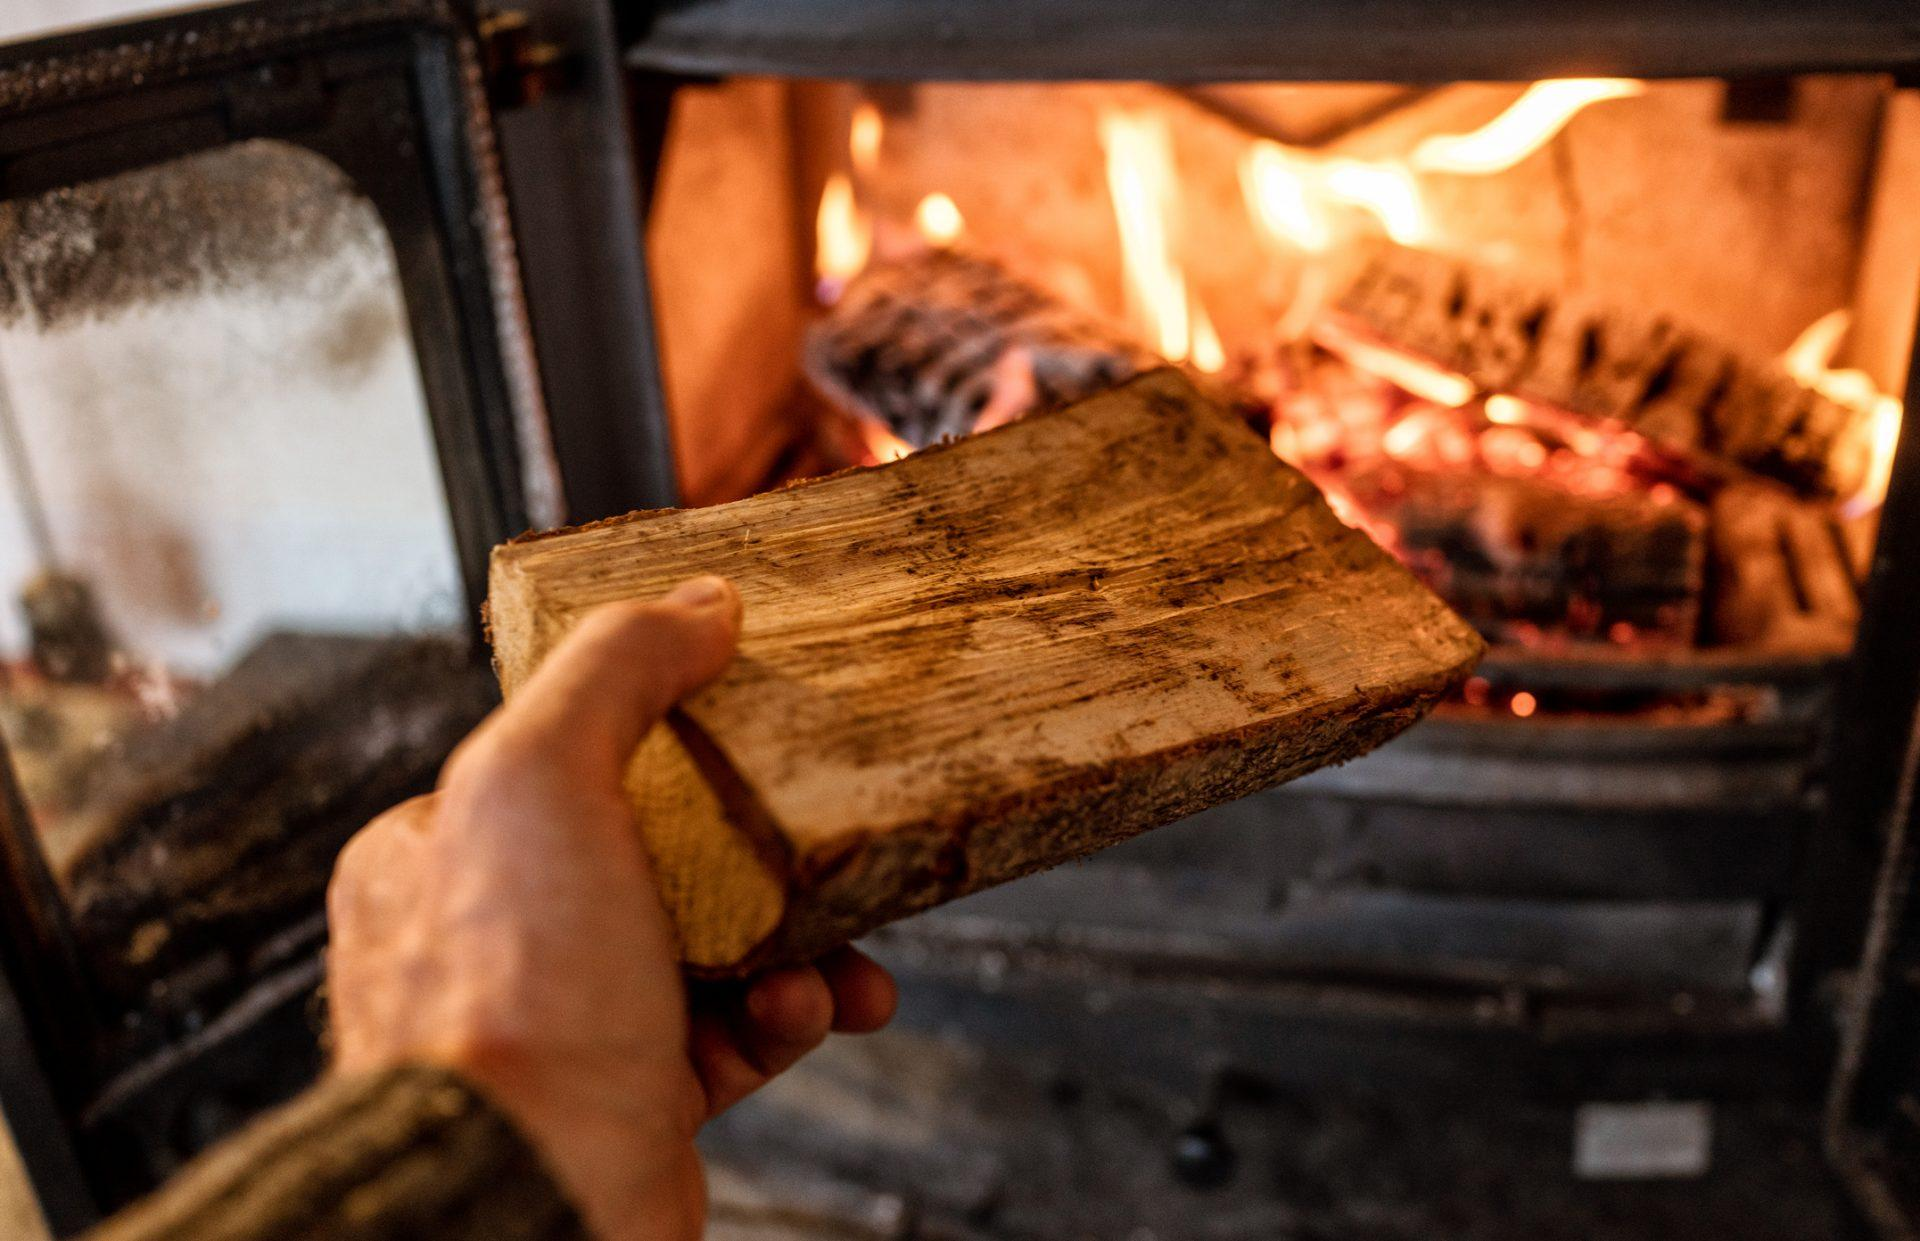 Close-up of a log being put into a hot wood-burning stove.